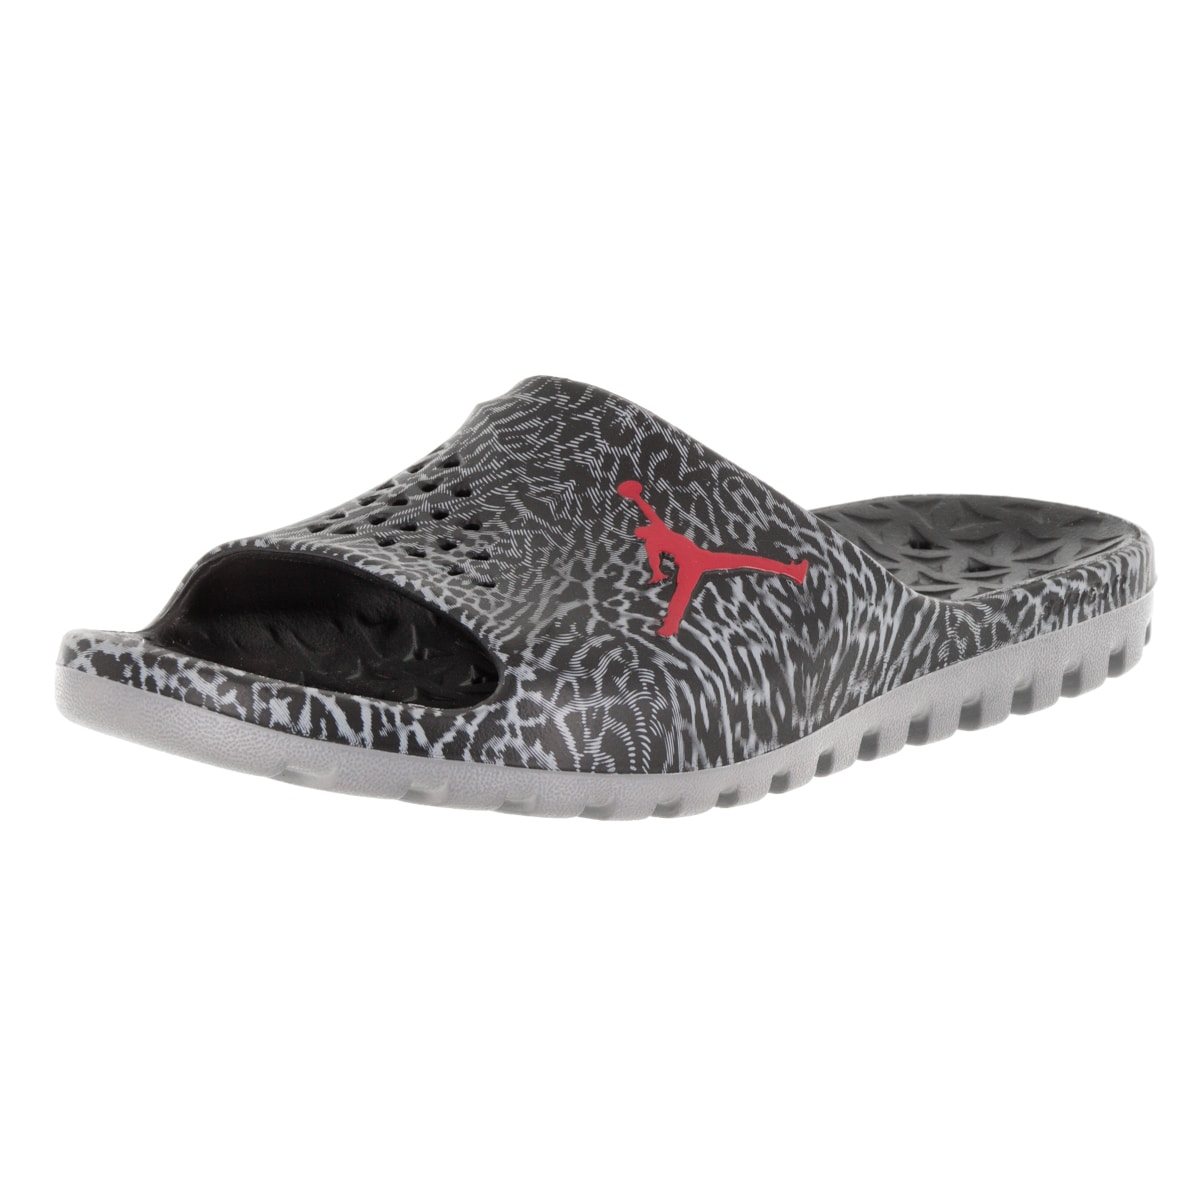 ef1268af8a305 Shop Nike Jordan Men s Jordan Super.Fly Team Slide Gr Black Gym Red Cool  Grey Sandal - Free Shipping Today - Overstock - 12318161